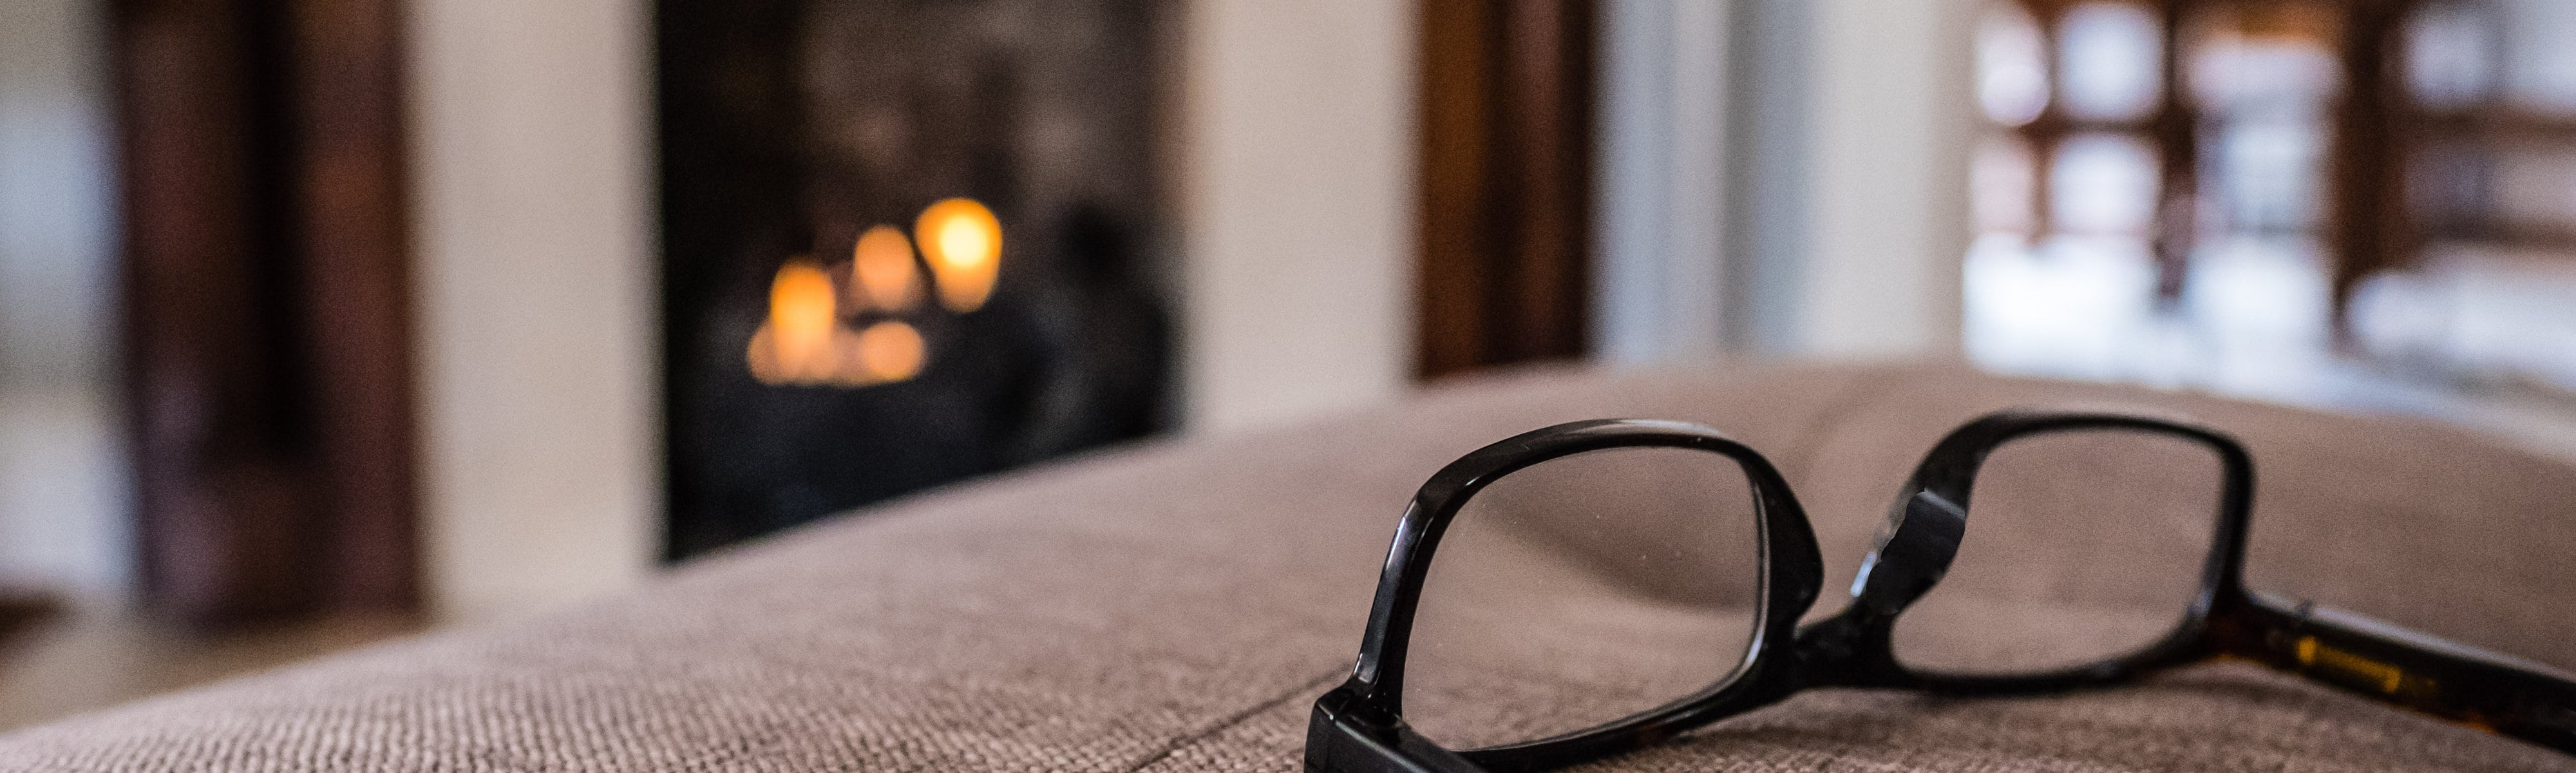 Gas fireplace with glasses in the foreground.